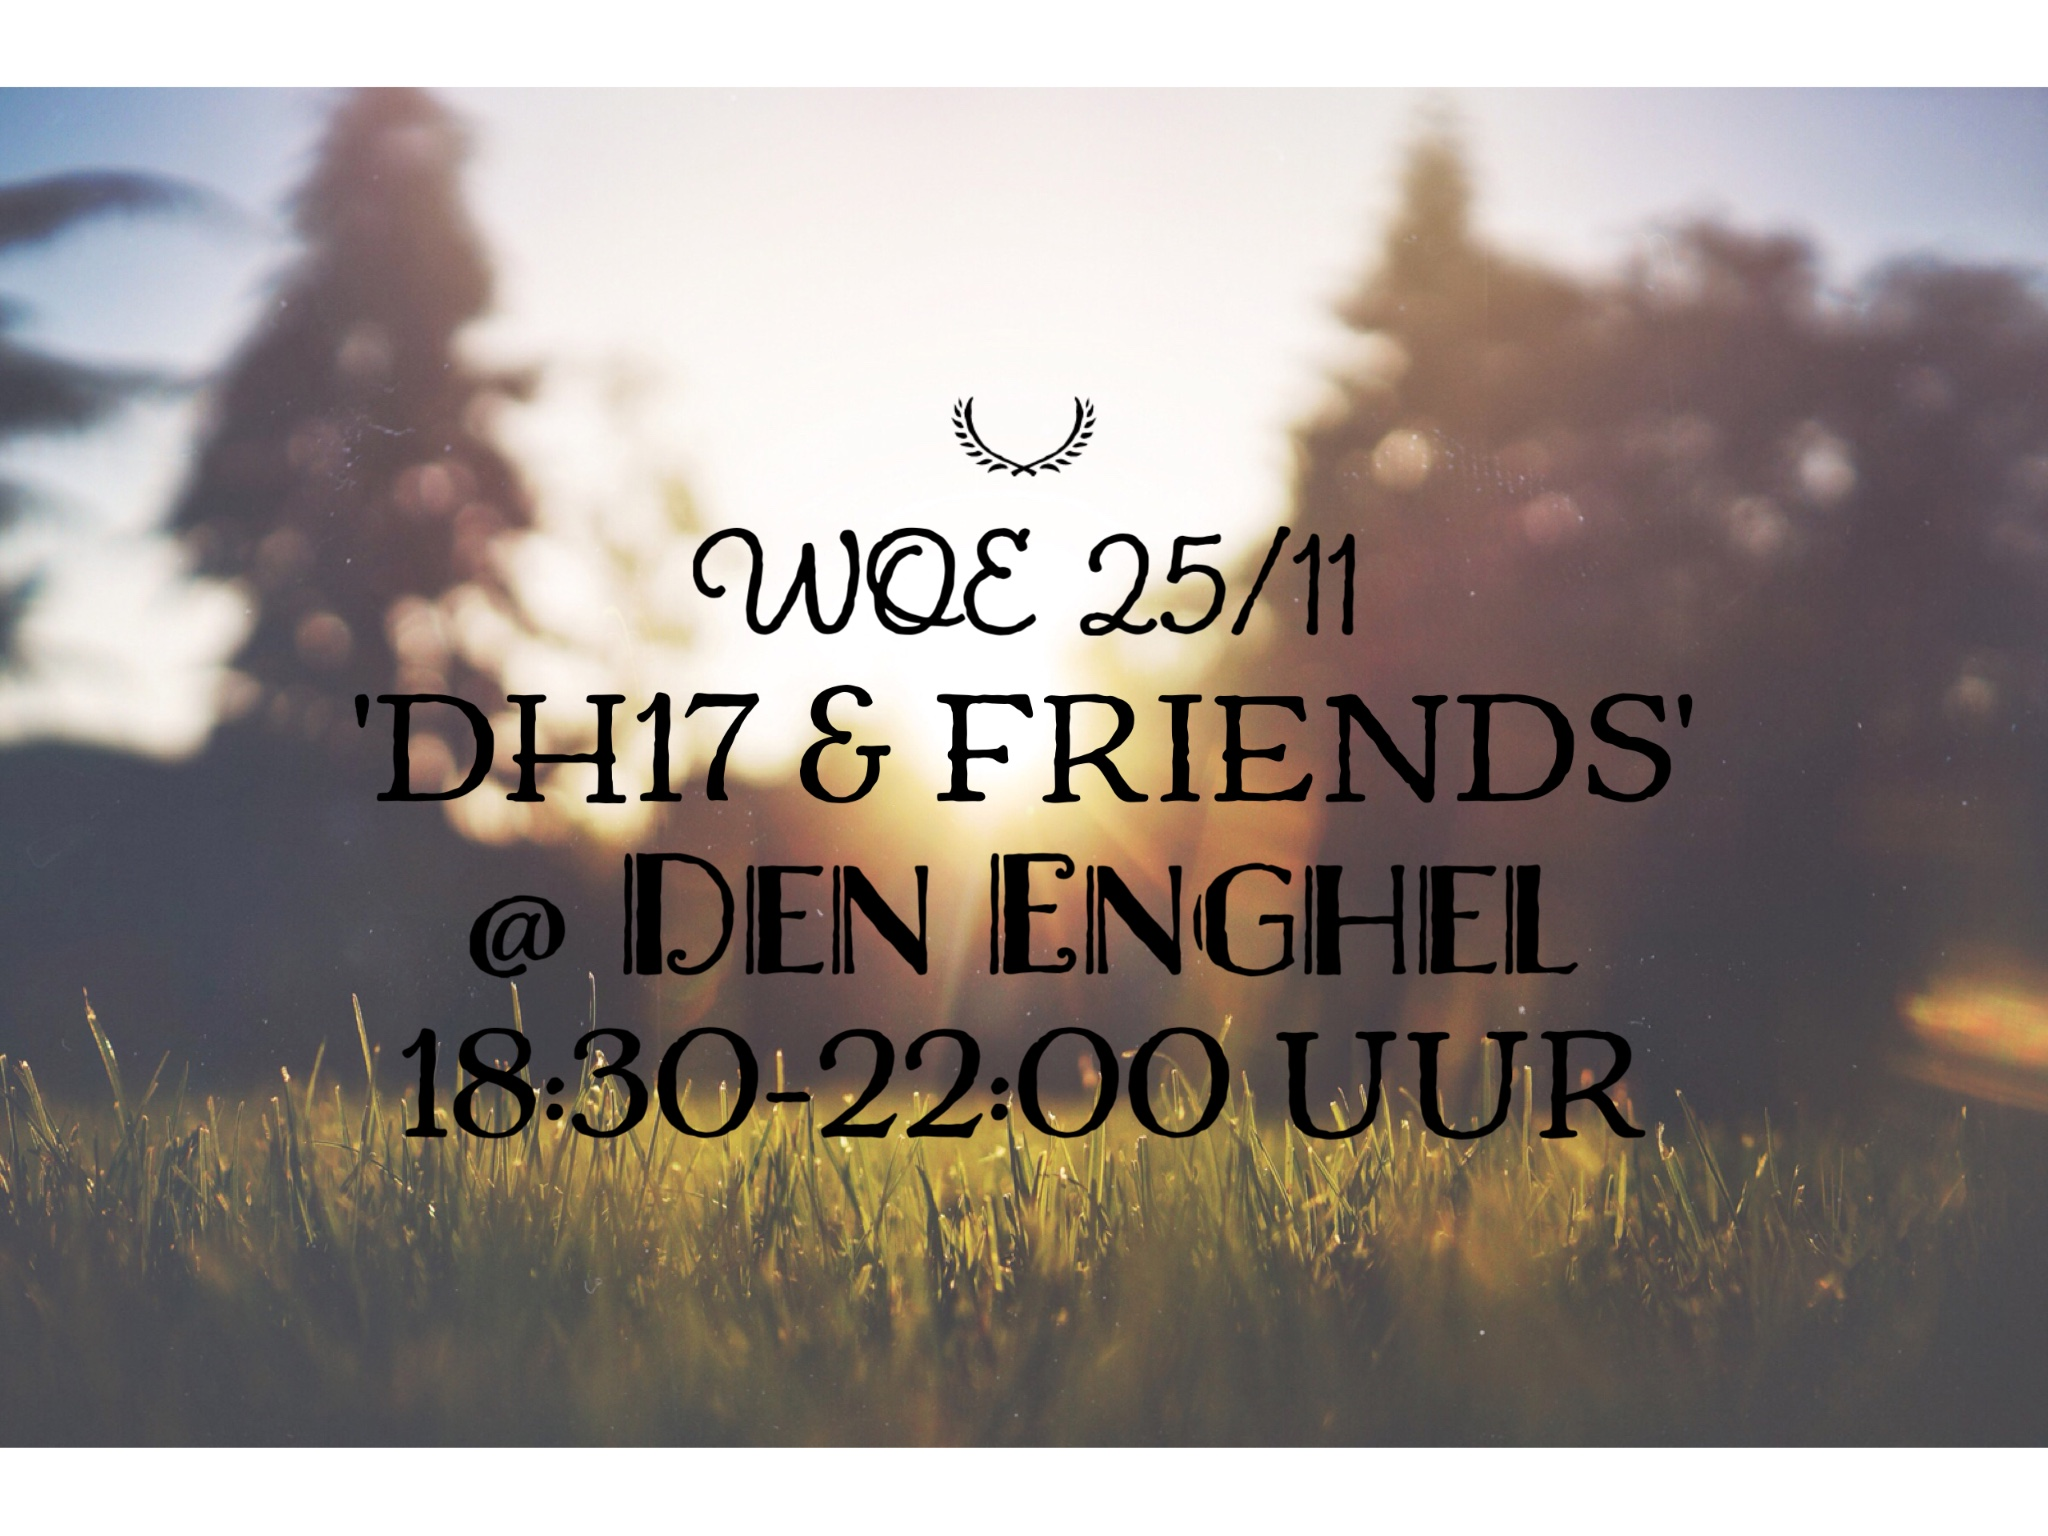 DH17 & Friends; een update!